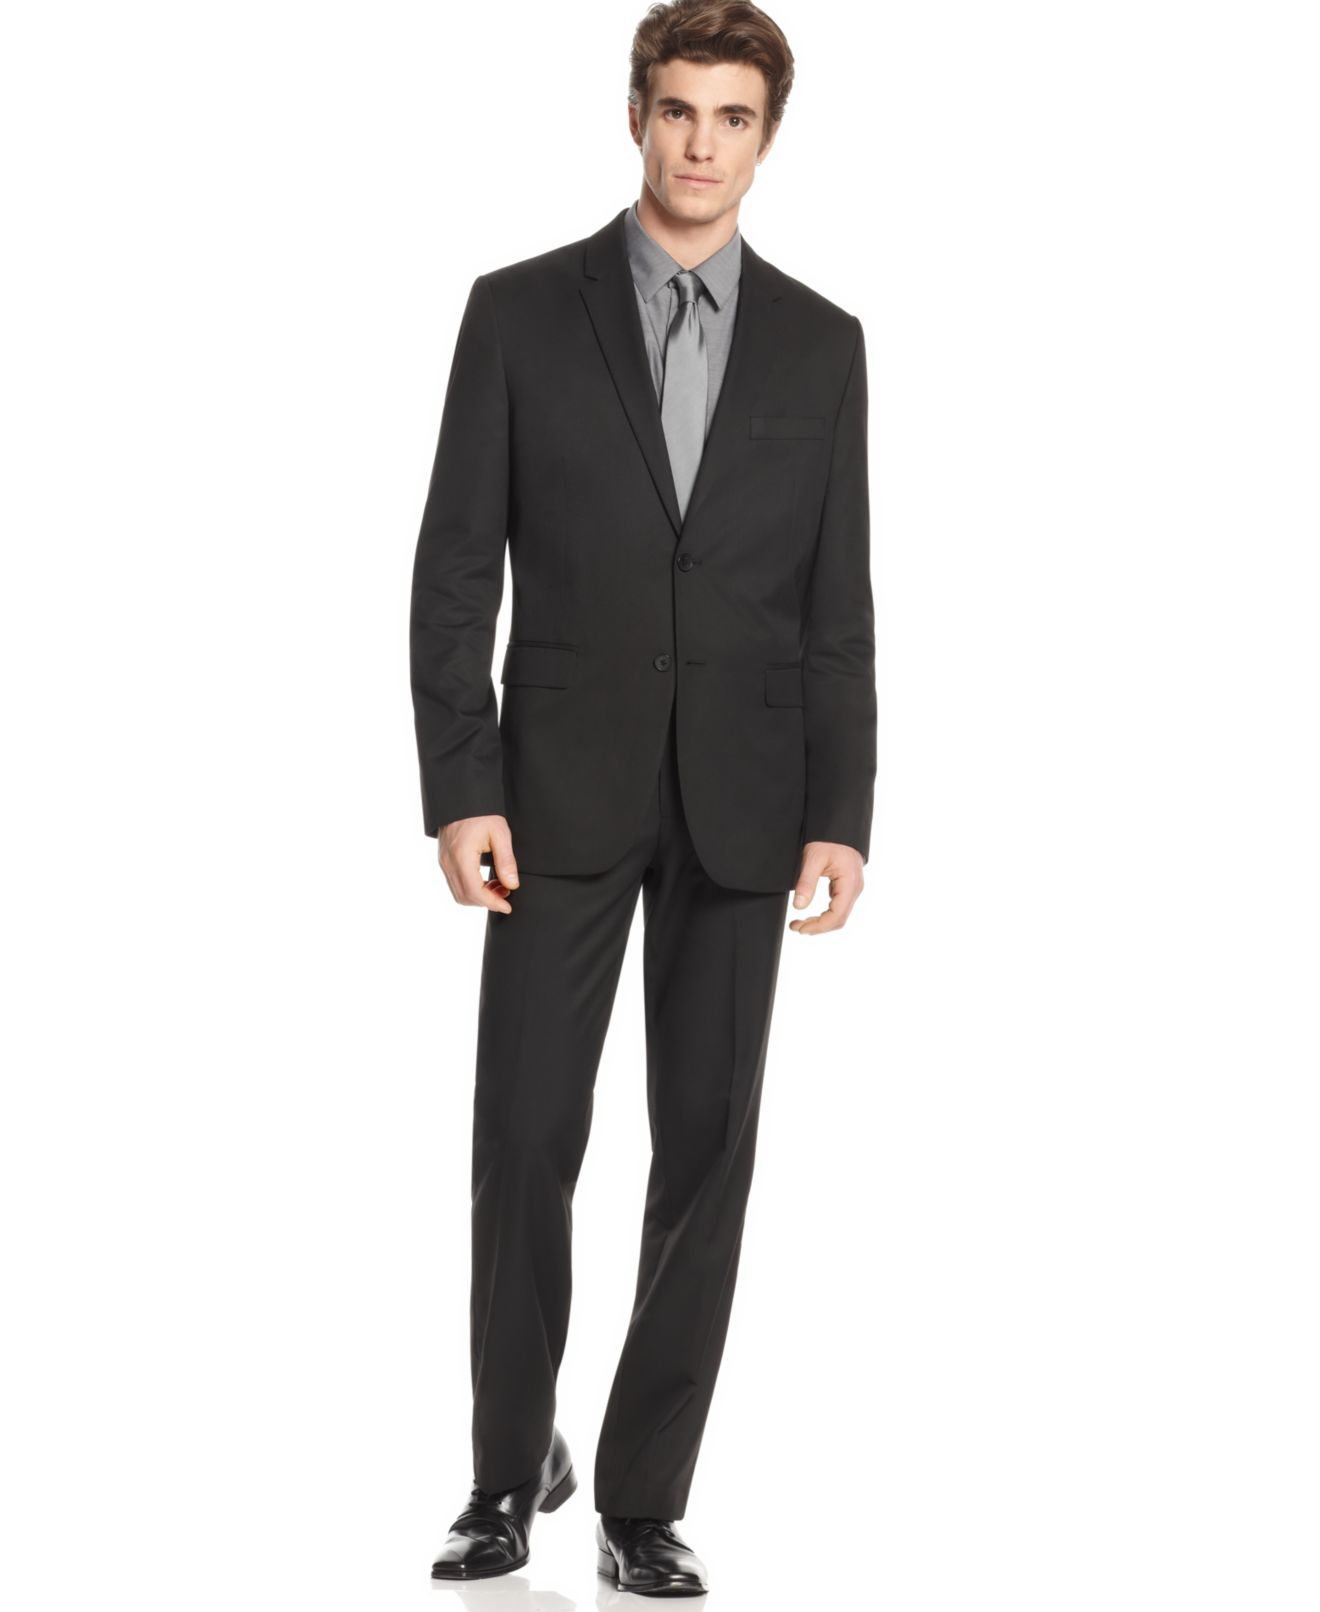 Calvin Klein Men's Suit, Slim Fit Two Piece Suit - Suits & Suit ...